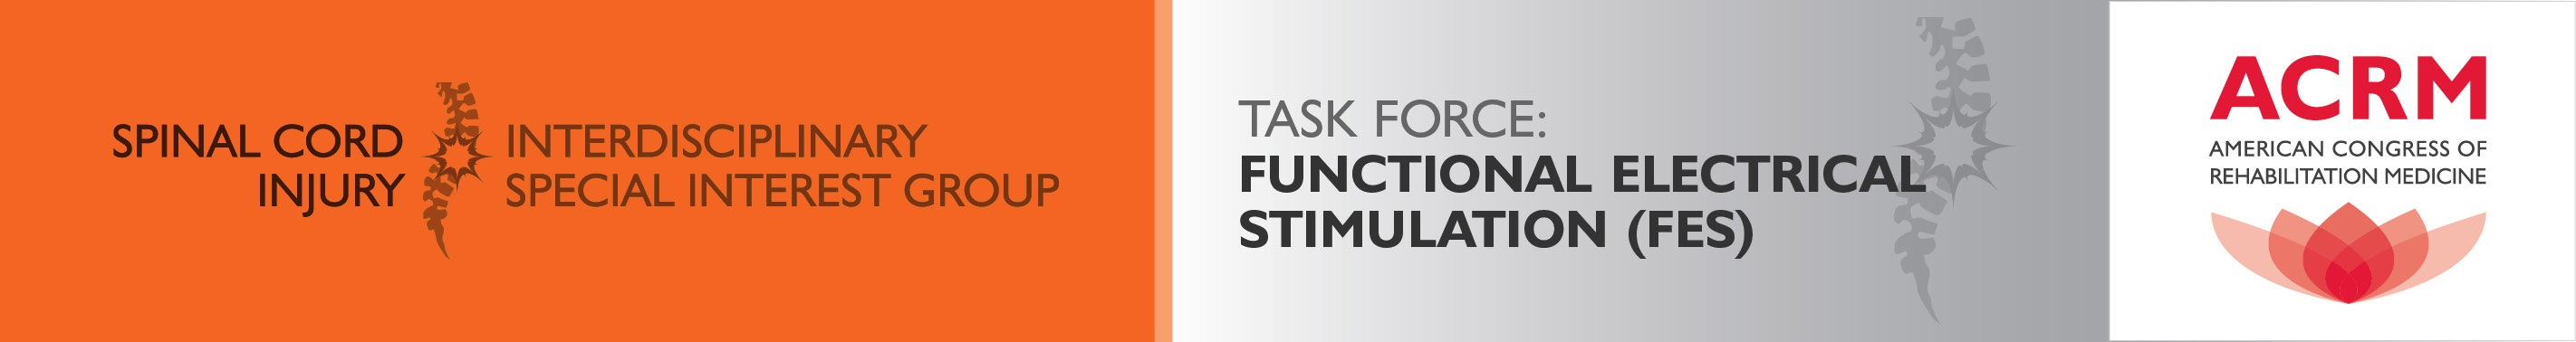 SCI-ISIG Functional Electrical Stimulation & Technology Task Force banner